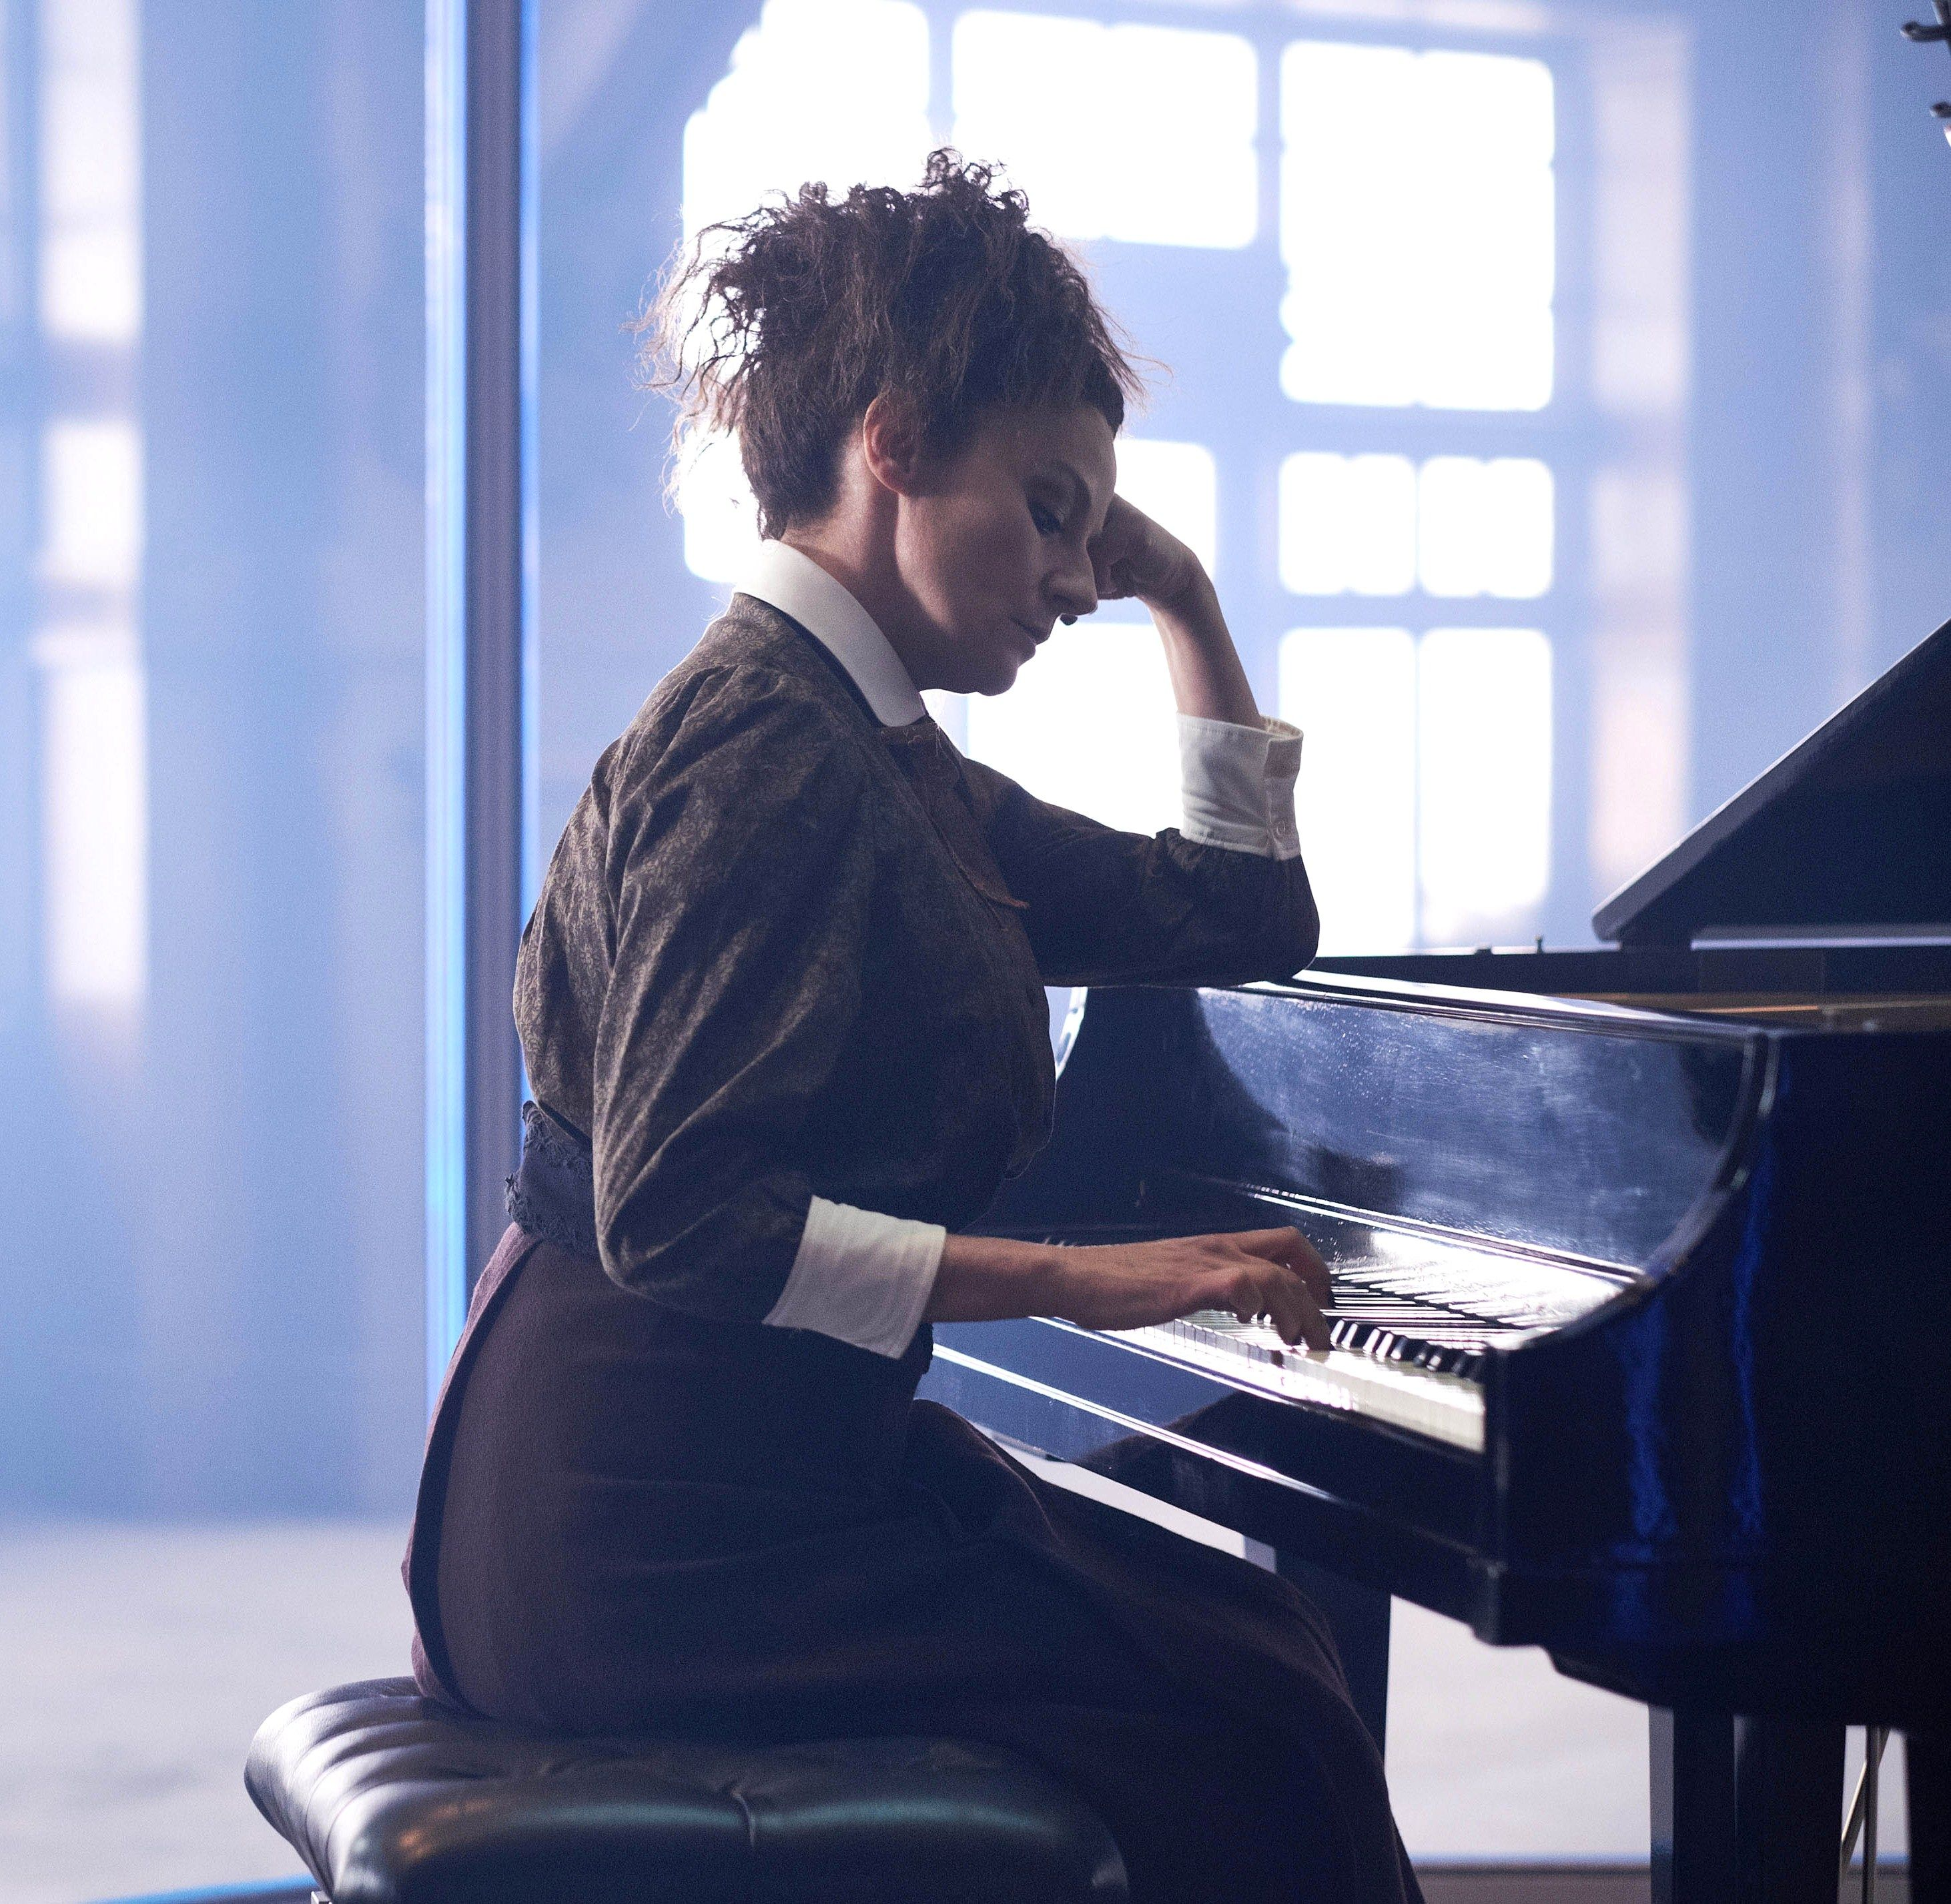 Missy piano playing. Ep. 8